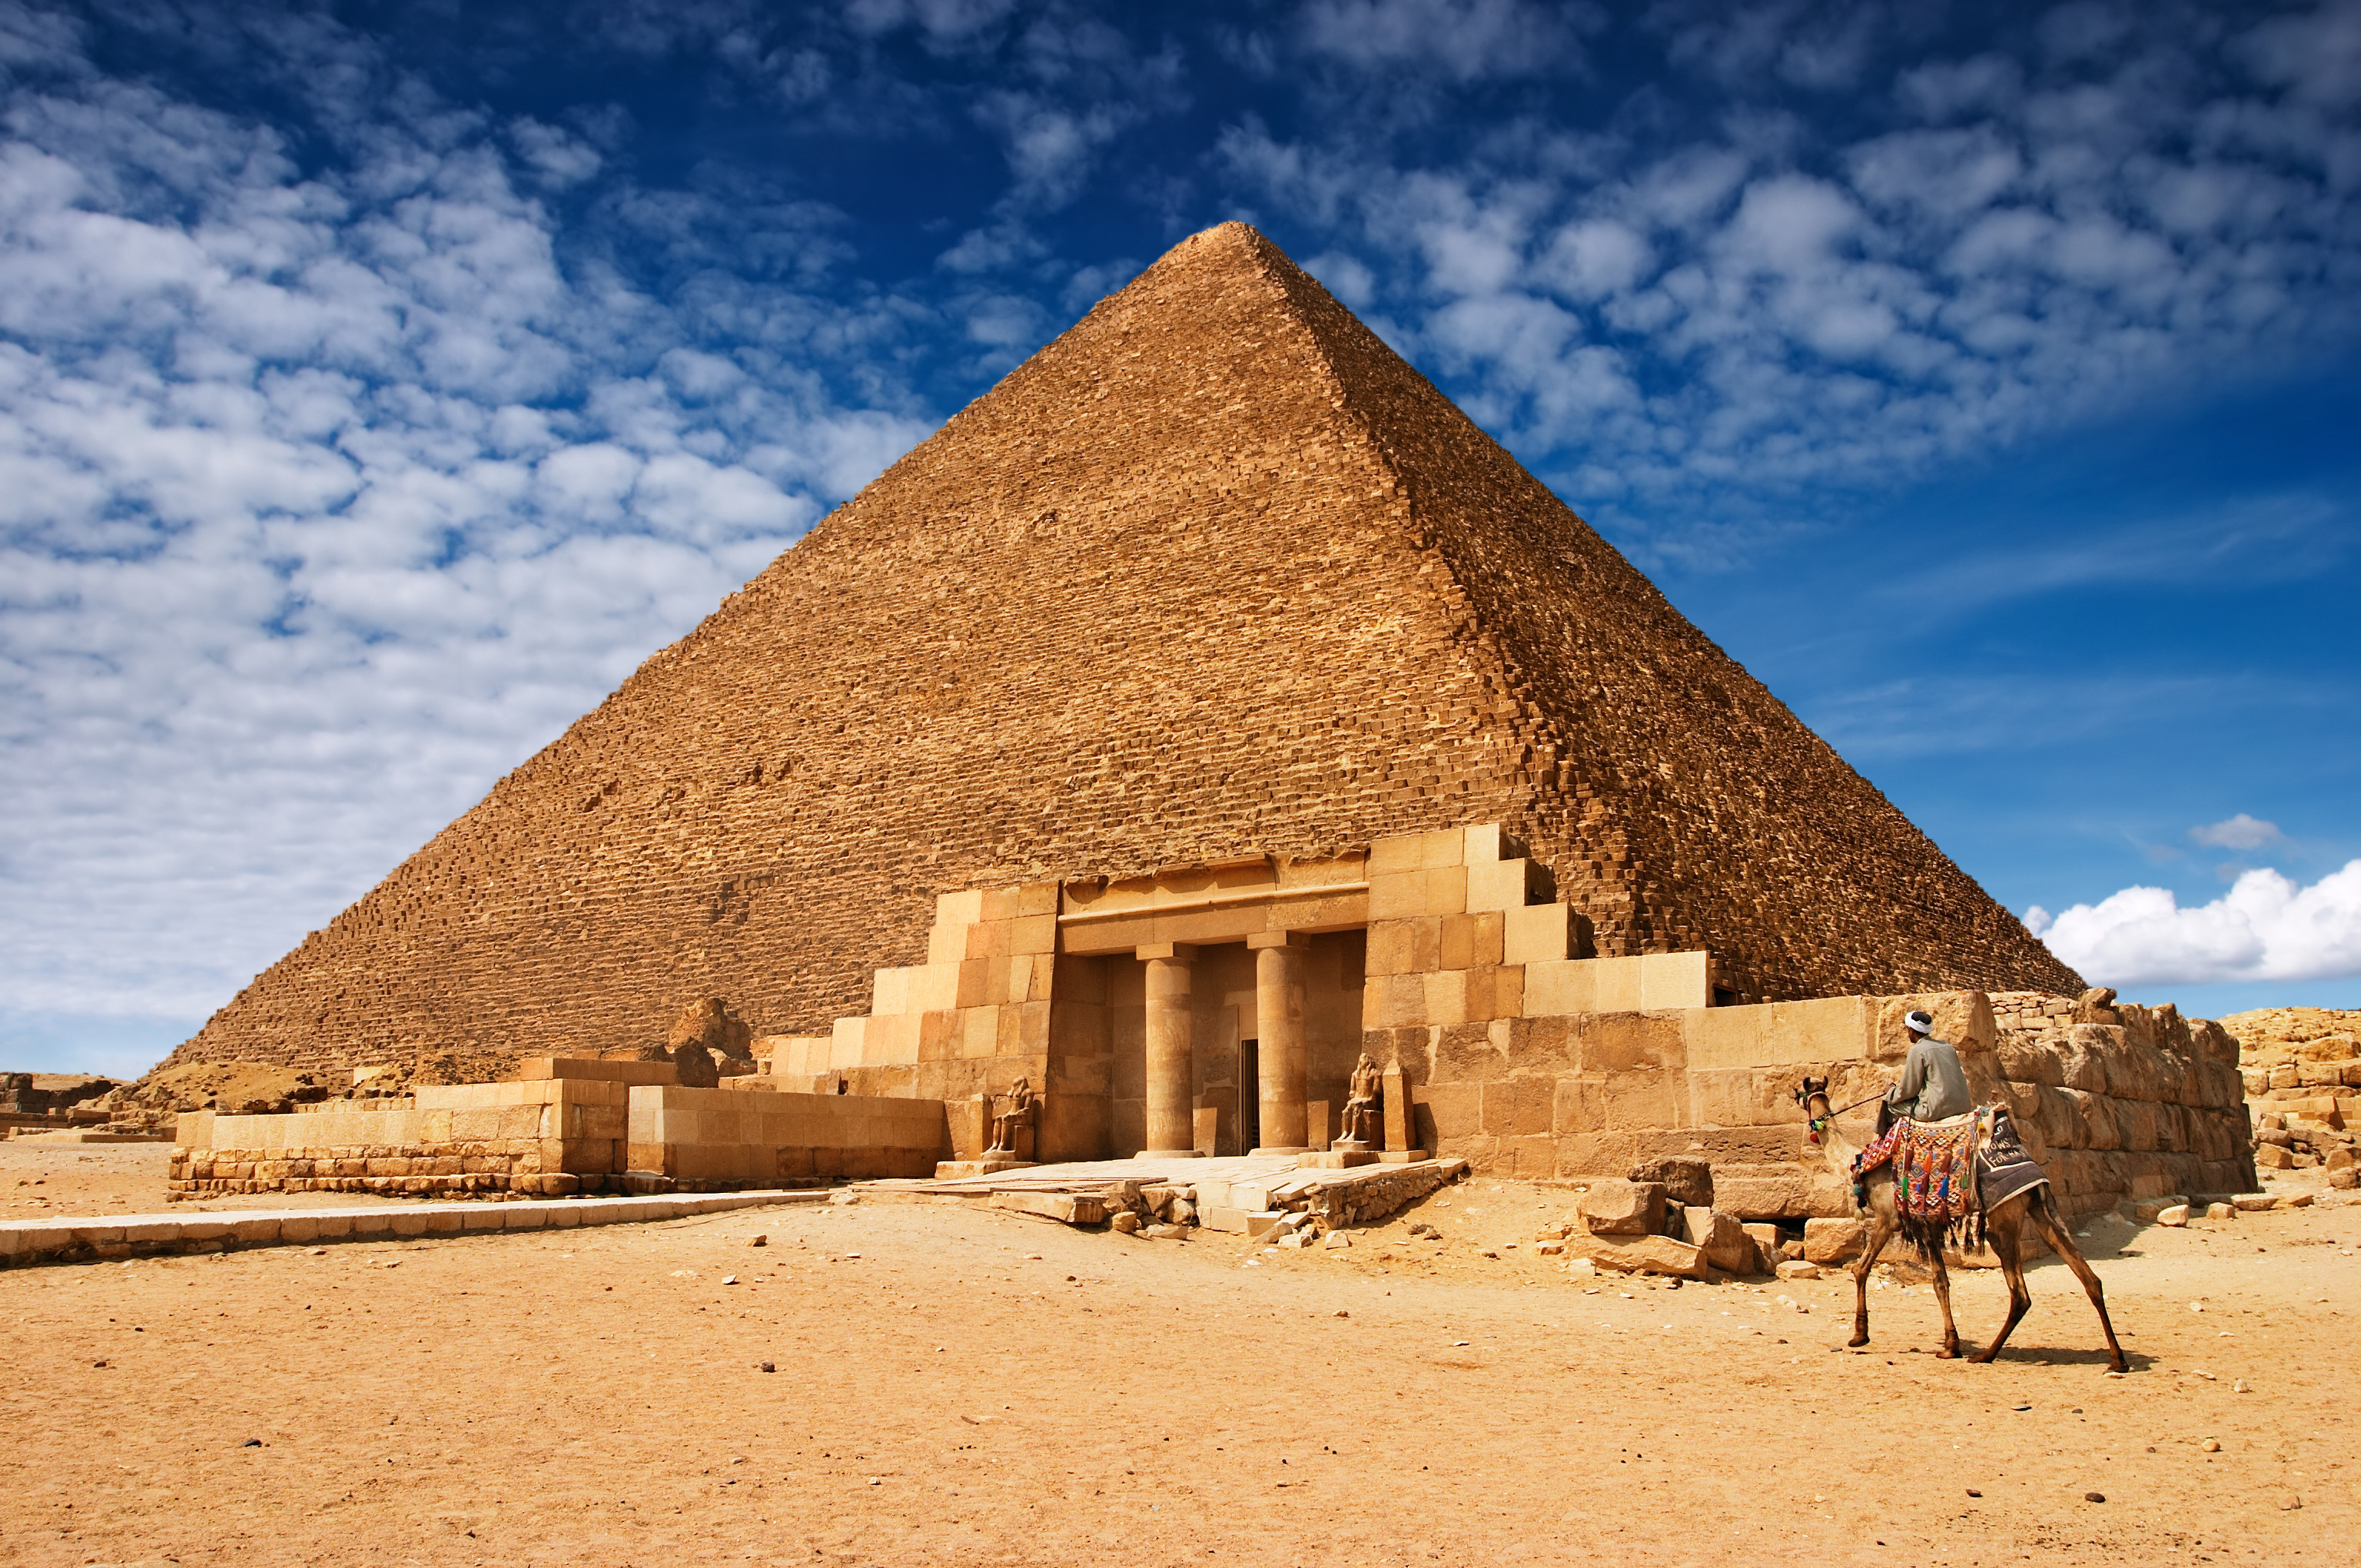 architecture buildings Egypt pyramids HD Wallpaper